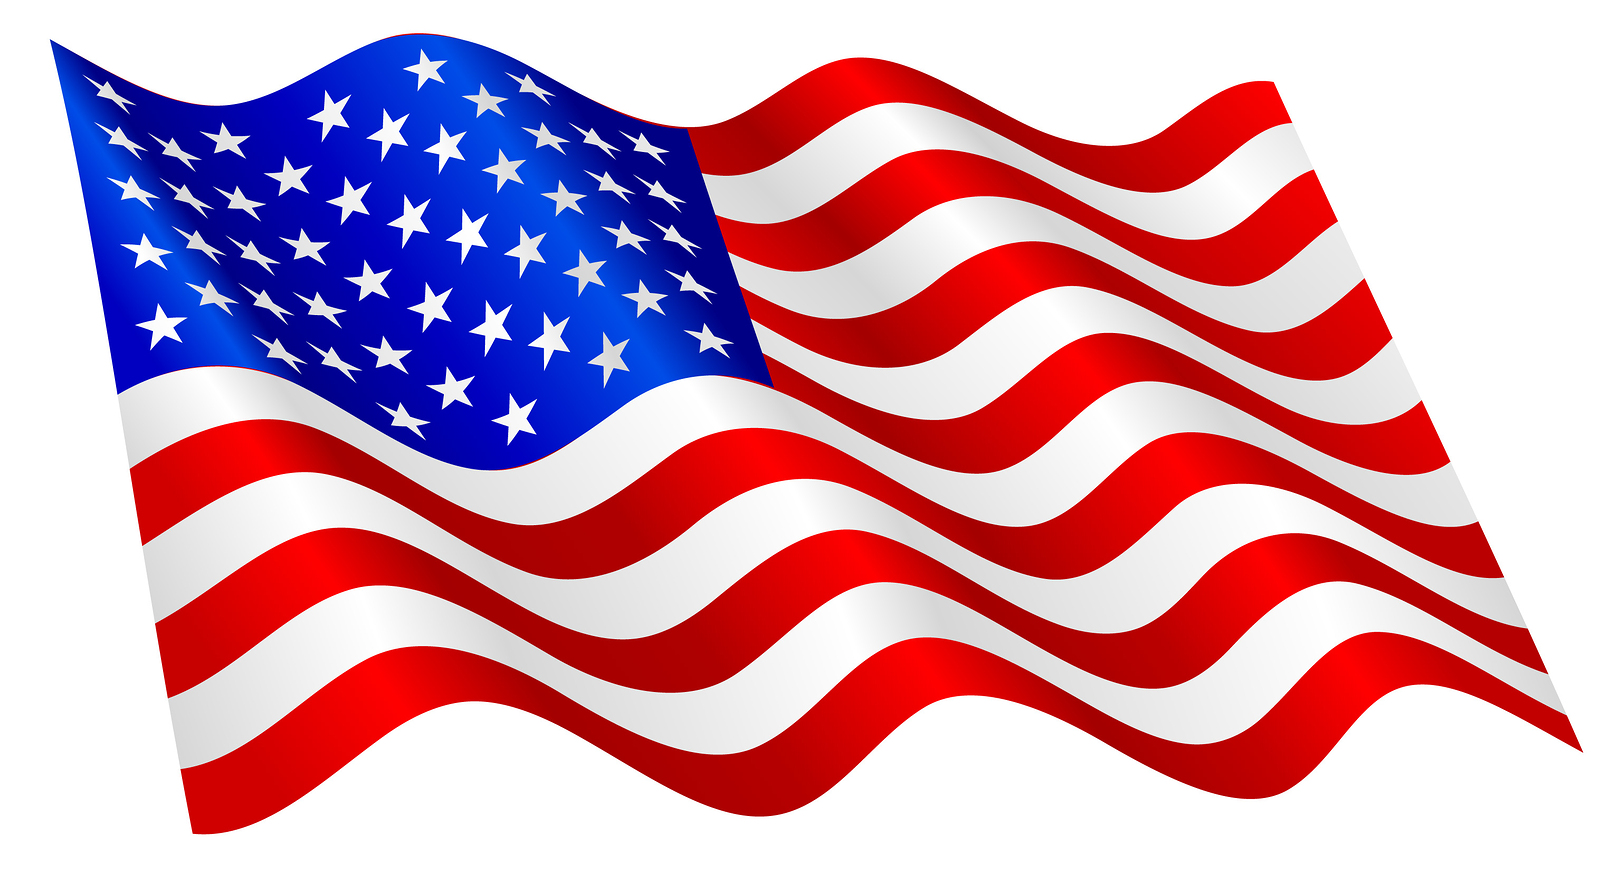 A Pic Of The American Flag .-A Pic Of The American Flag .-13